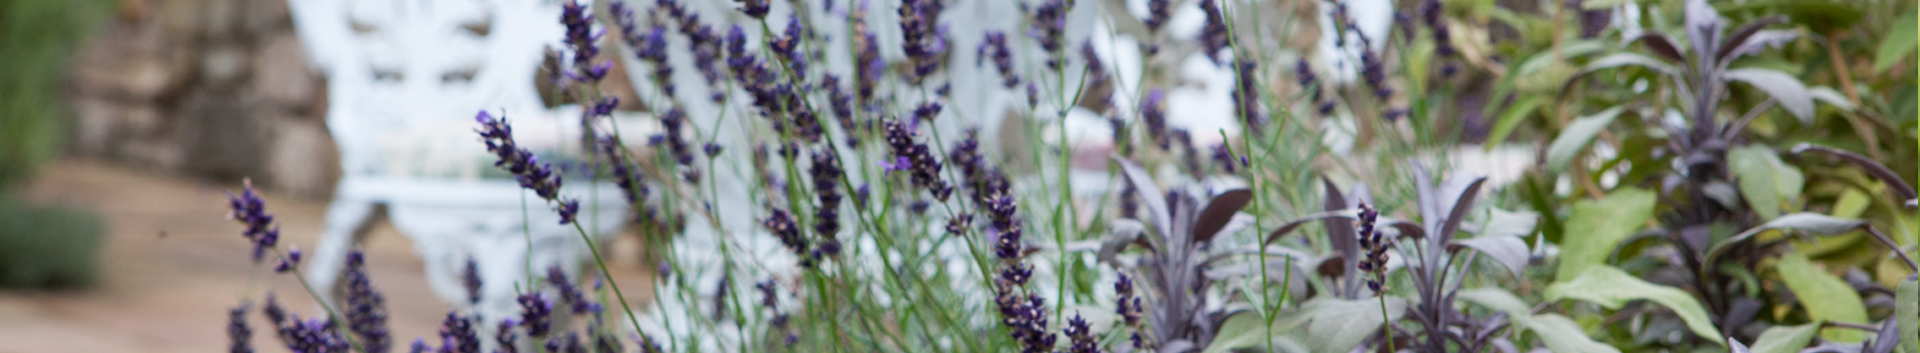 Polley Garden Design - lavendar